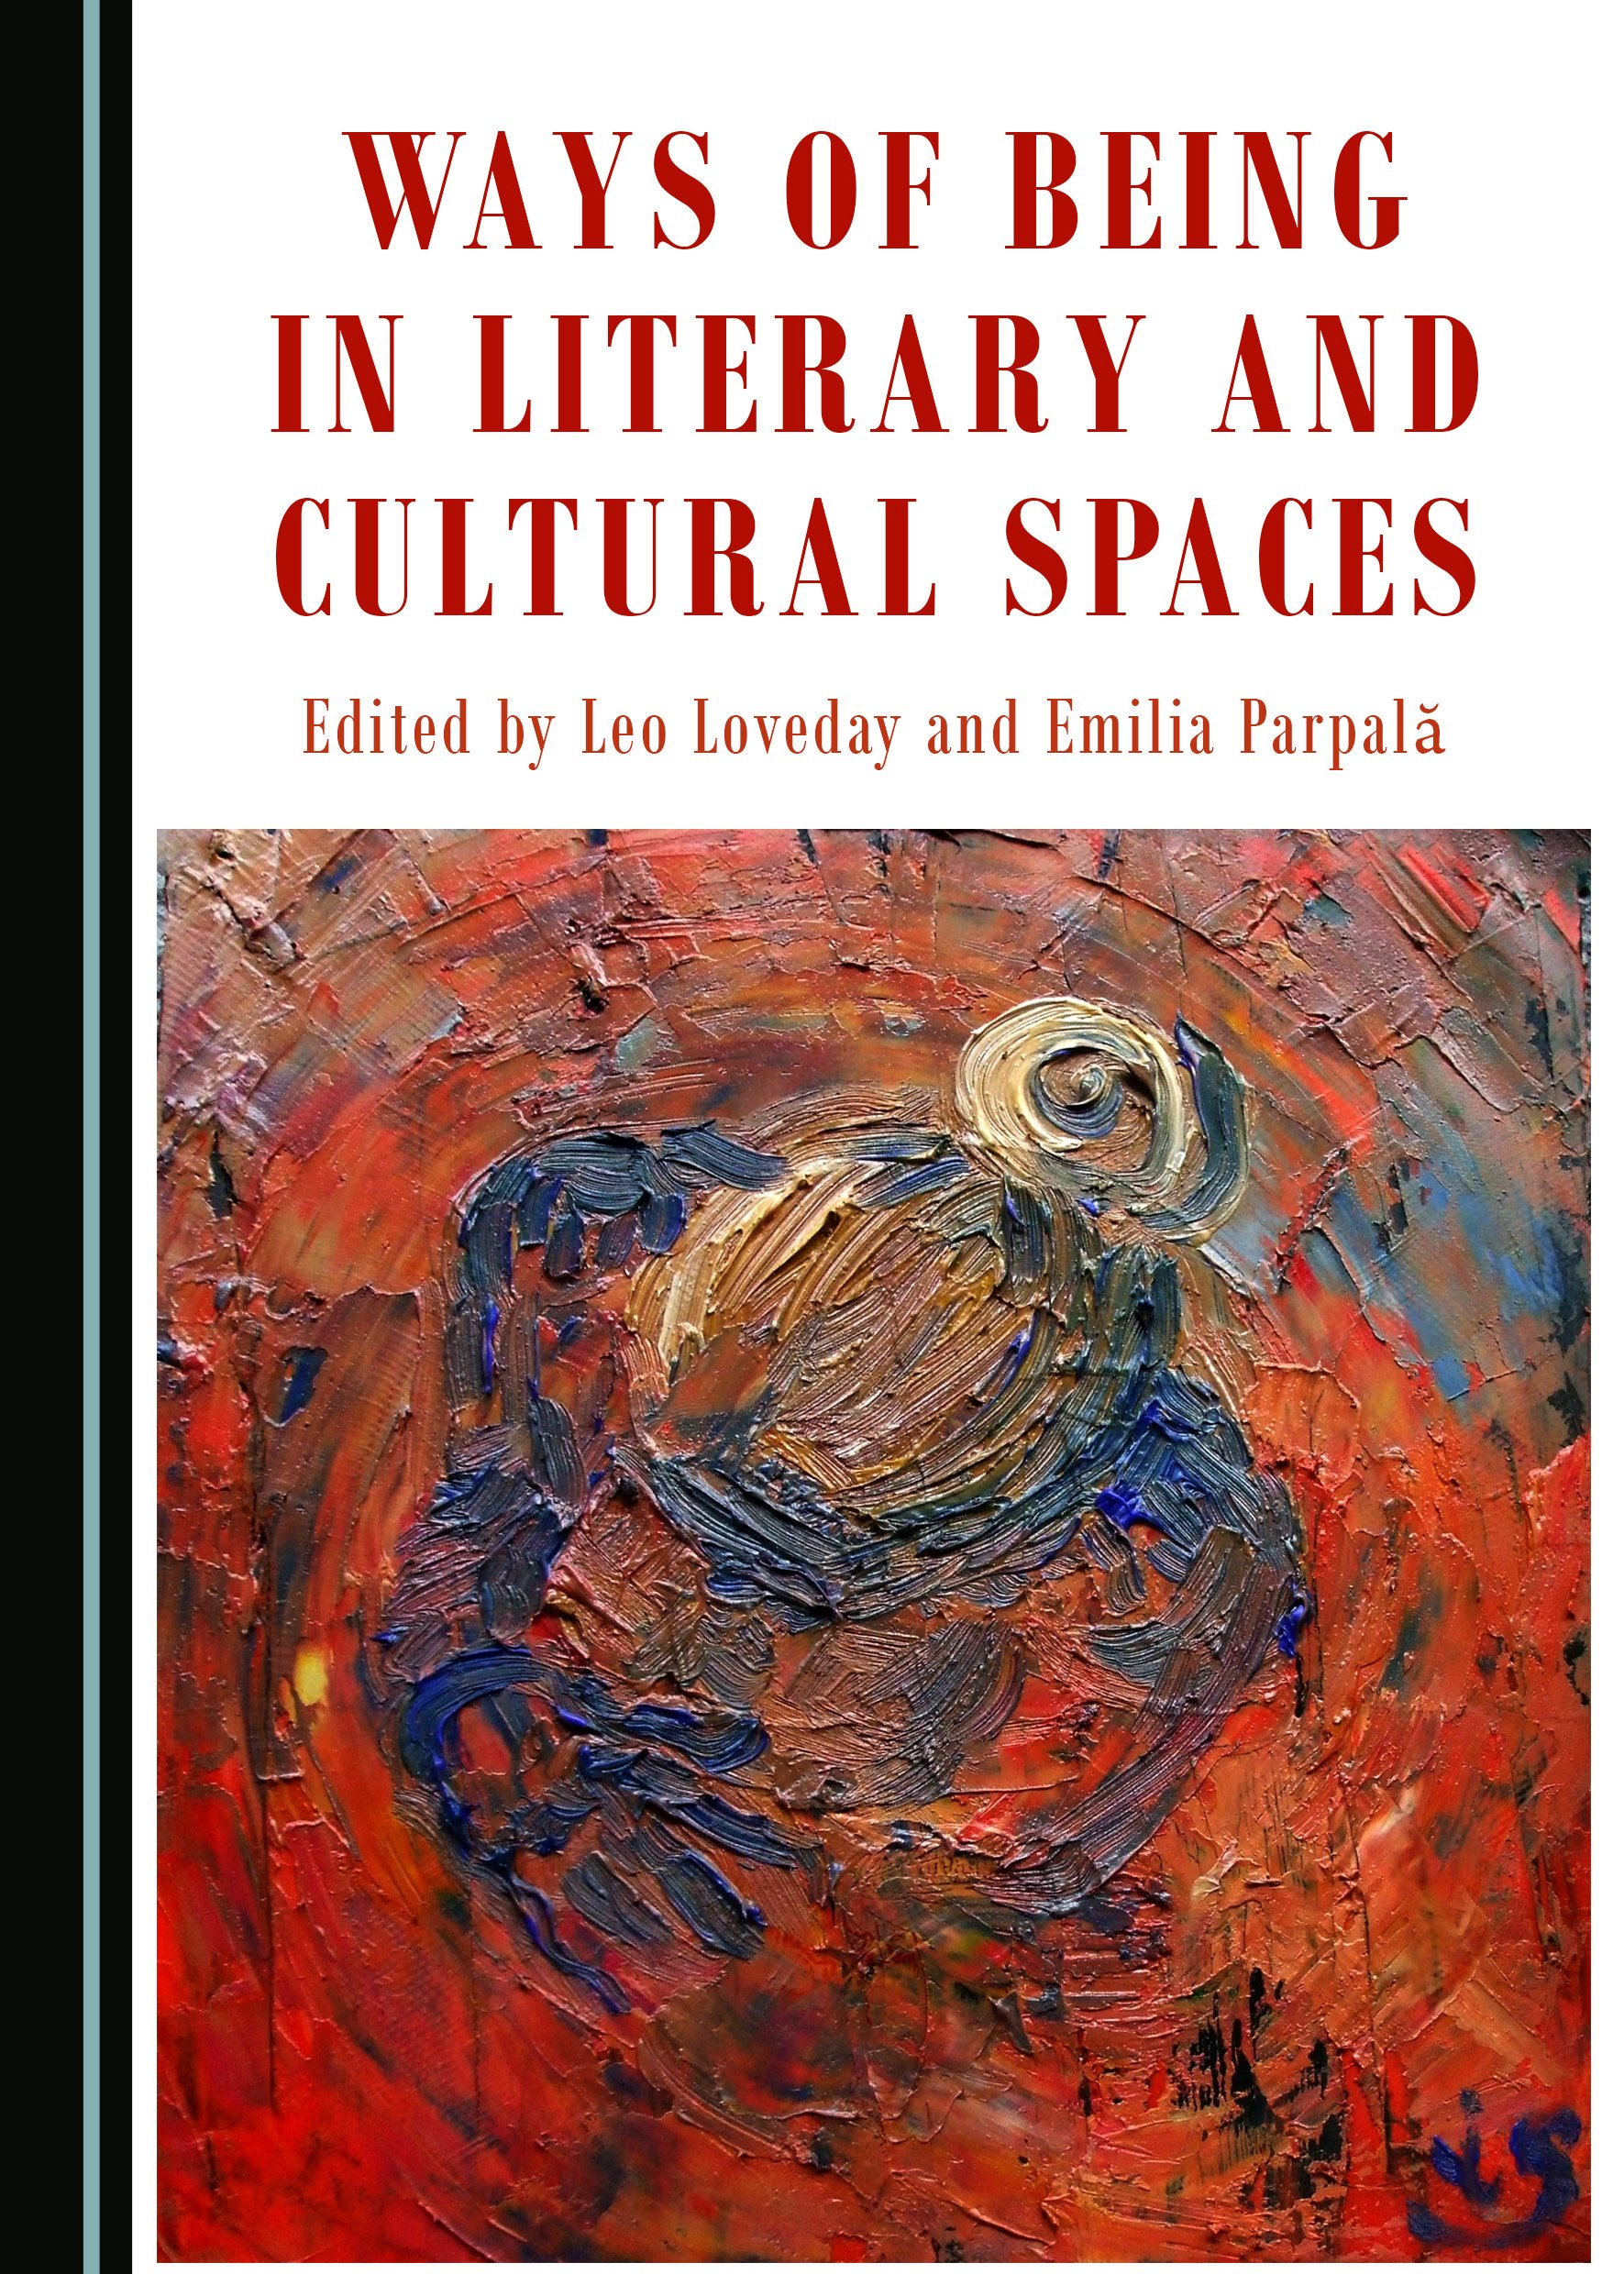 Ways of Being in Literary and Cultural Spaces